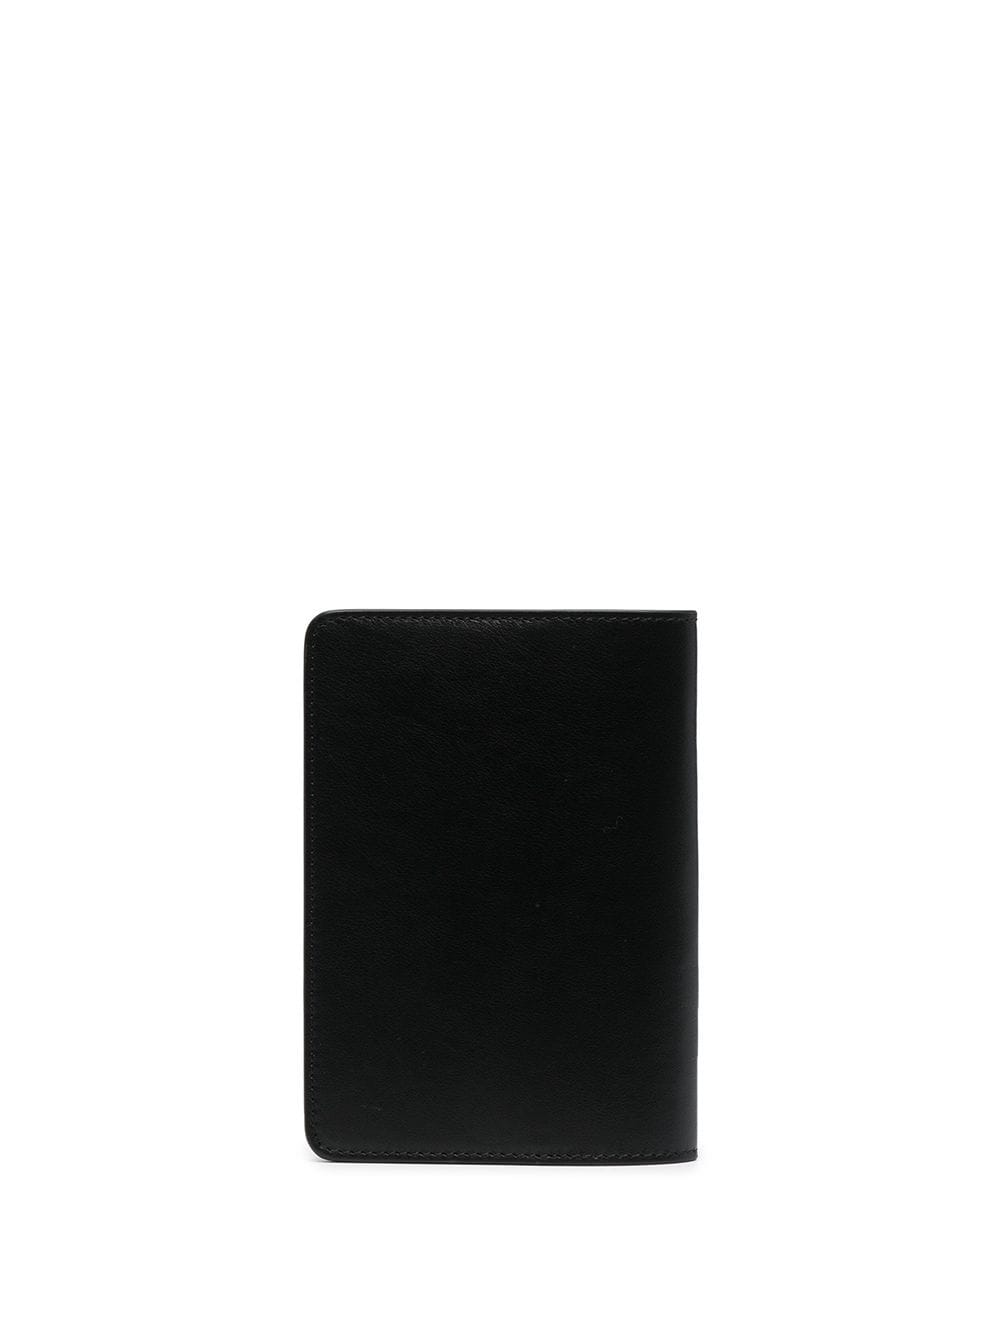 OFF-WHITE CALF SKIN QUOTE PASSPORT HOLDER